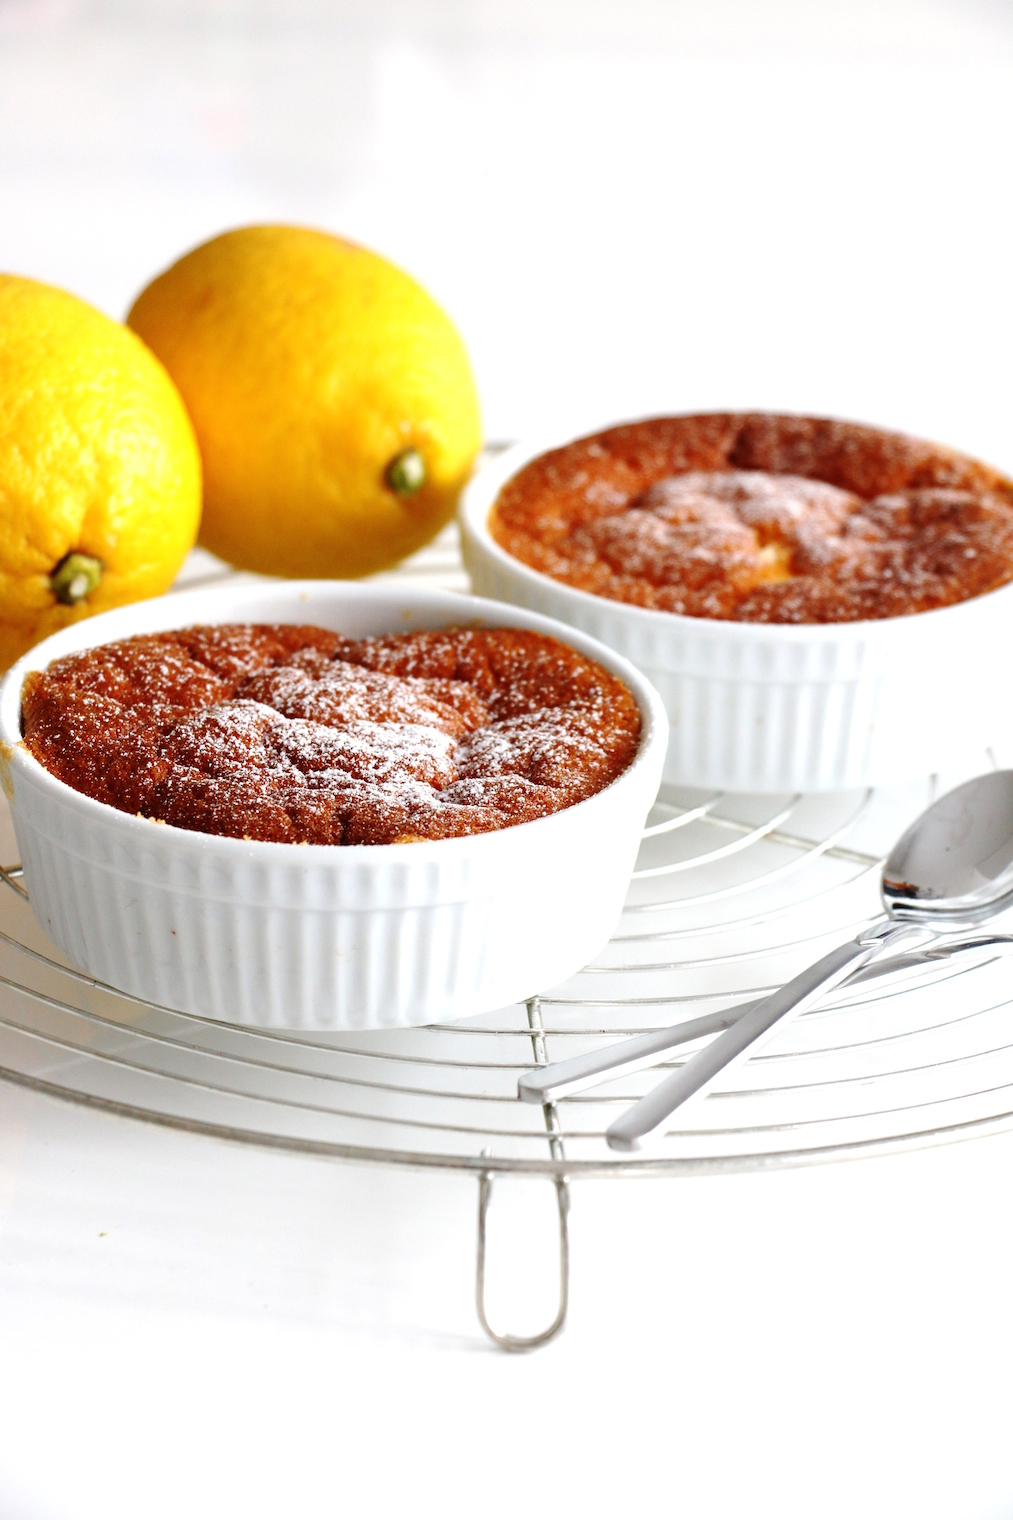 lemon pudding cakes | www.savormania.com